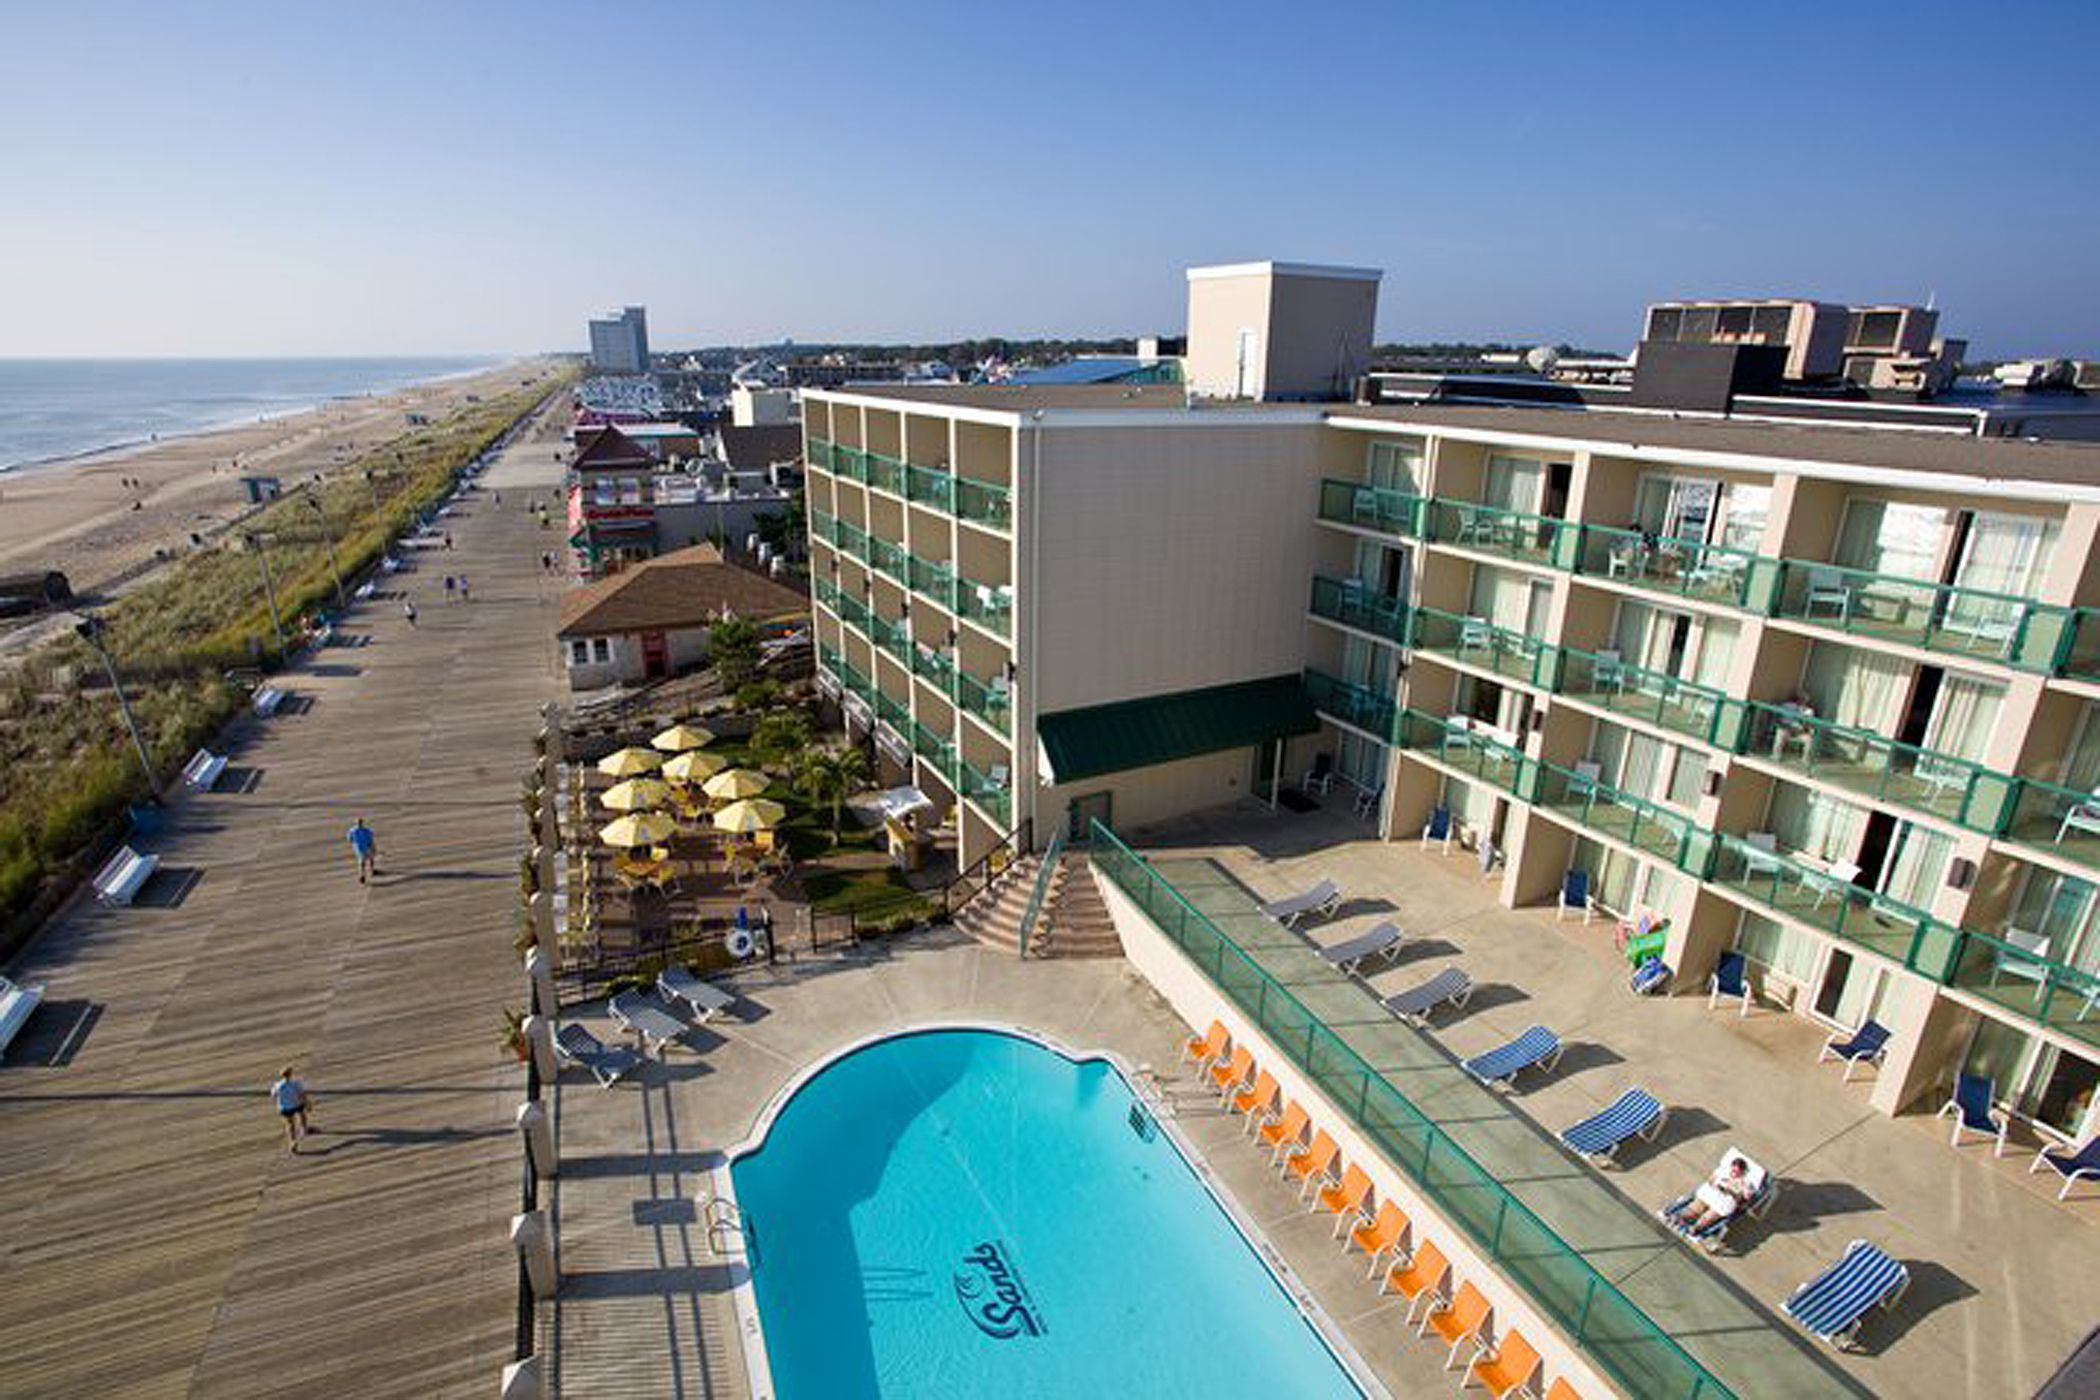 Hotel Rehoboth The Atlantic Sands Hotel In Rehoboth Beach Has A History Of